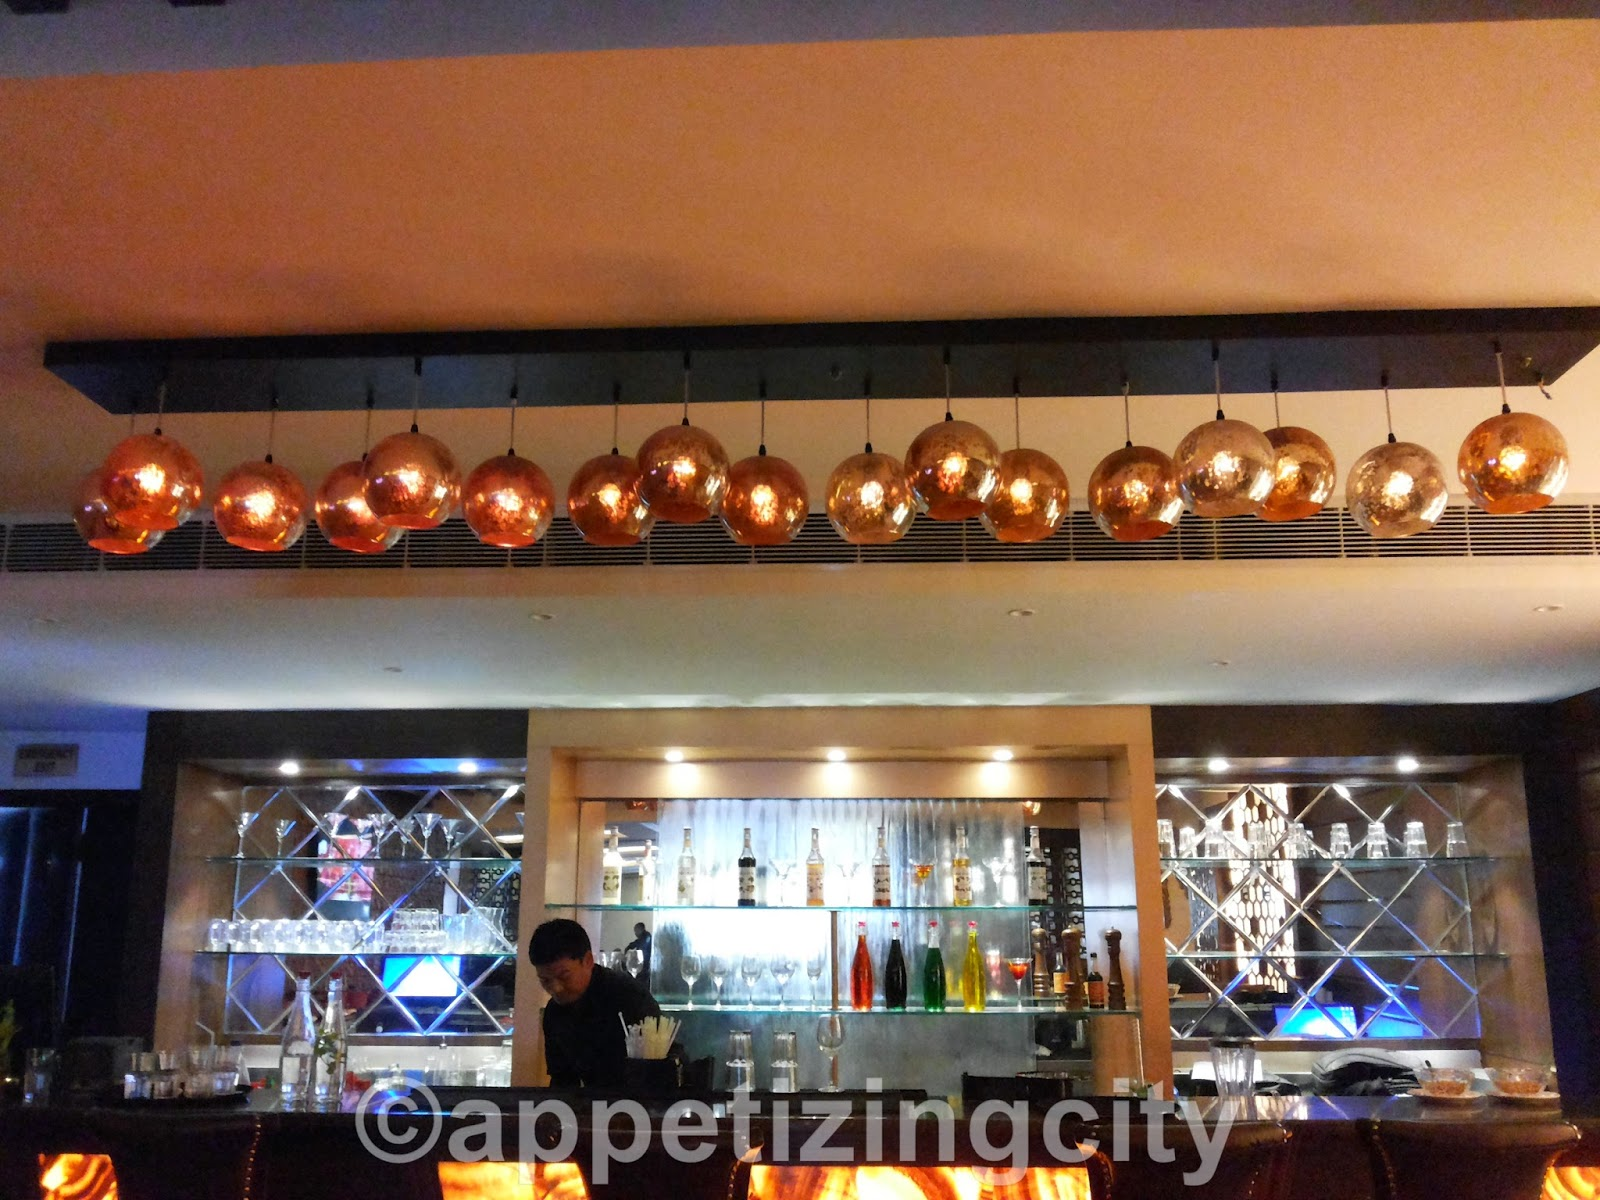 Capital Grill - Rajouri Garden - APPETIZING CITY